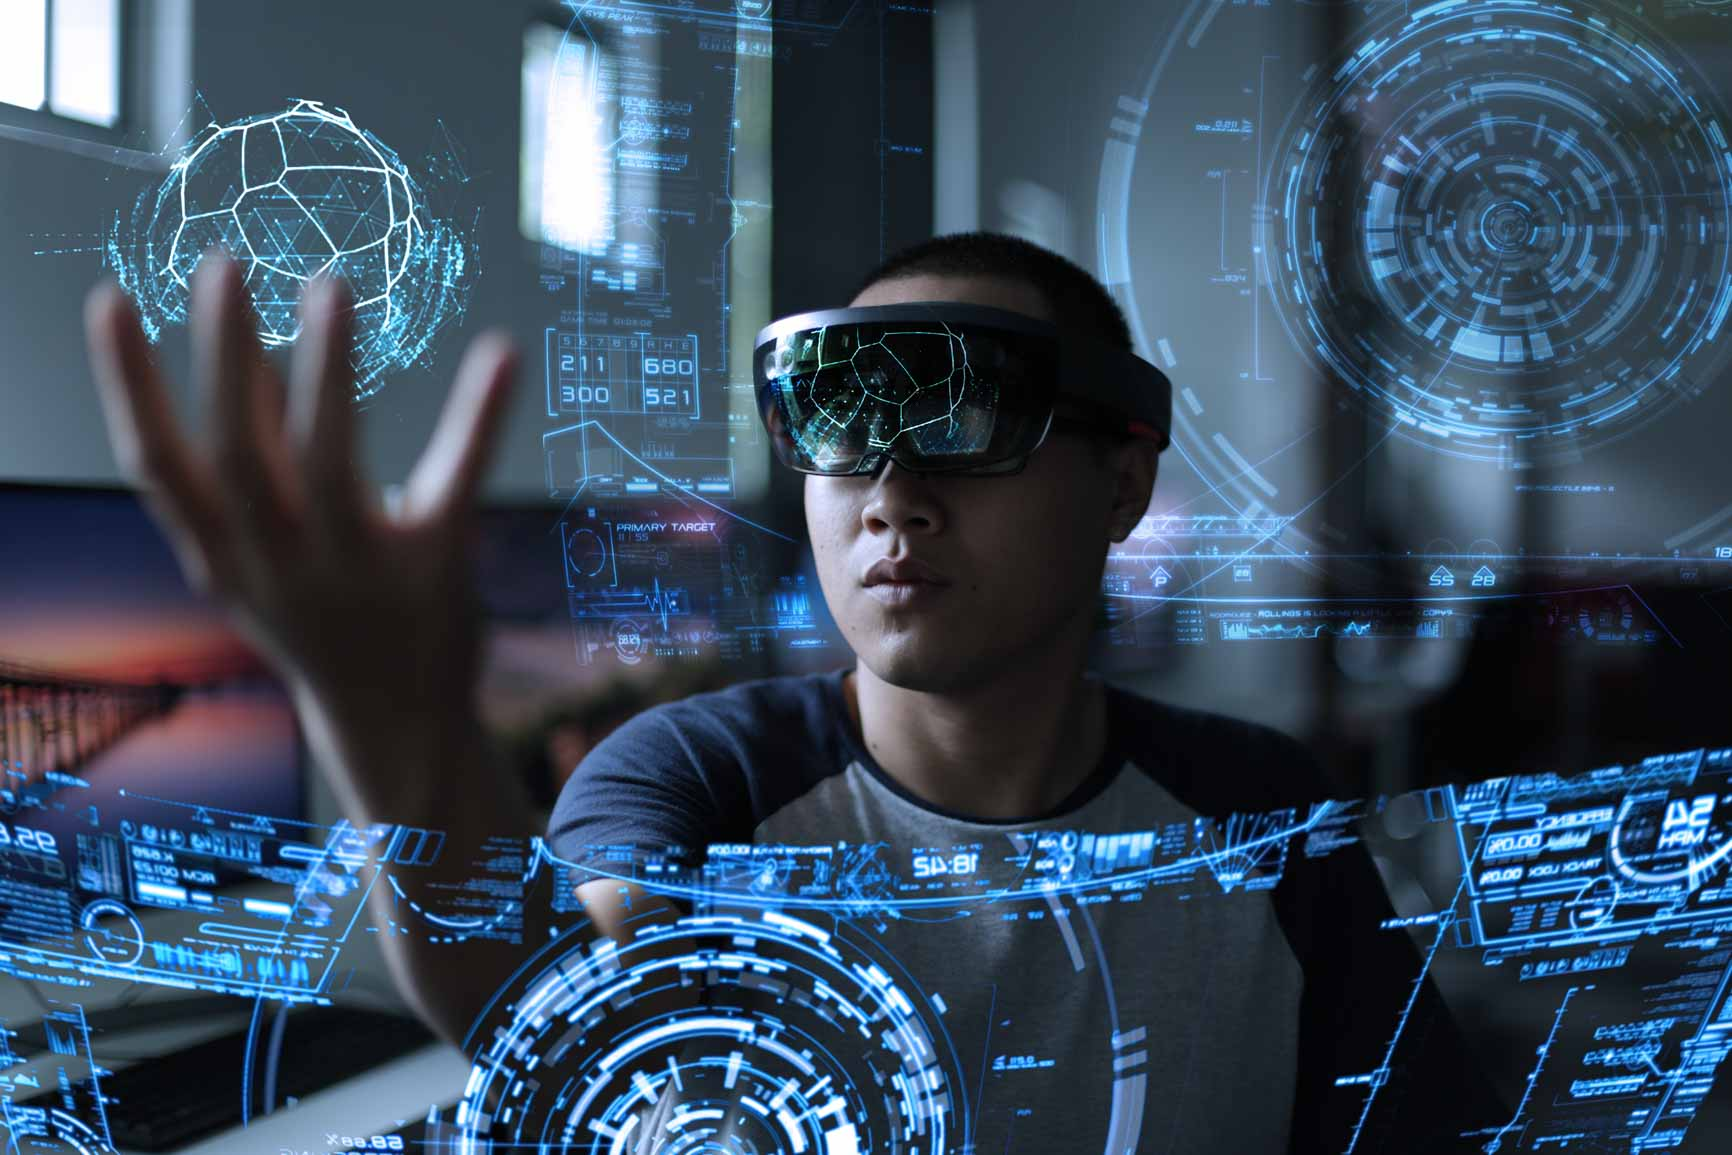 Man Wearing VR Headset looking at 3D information